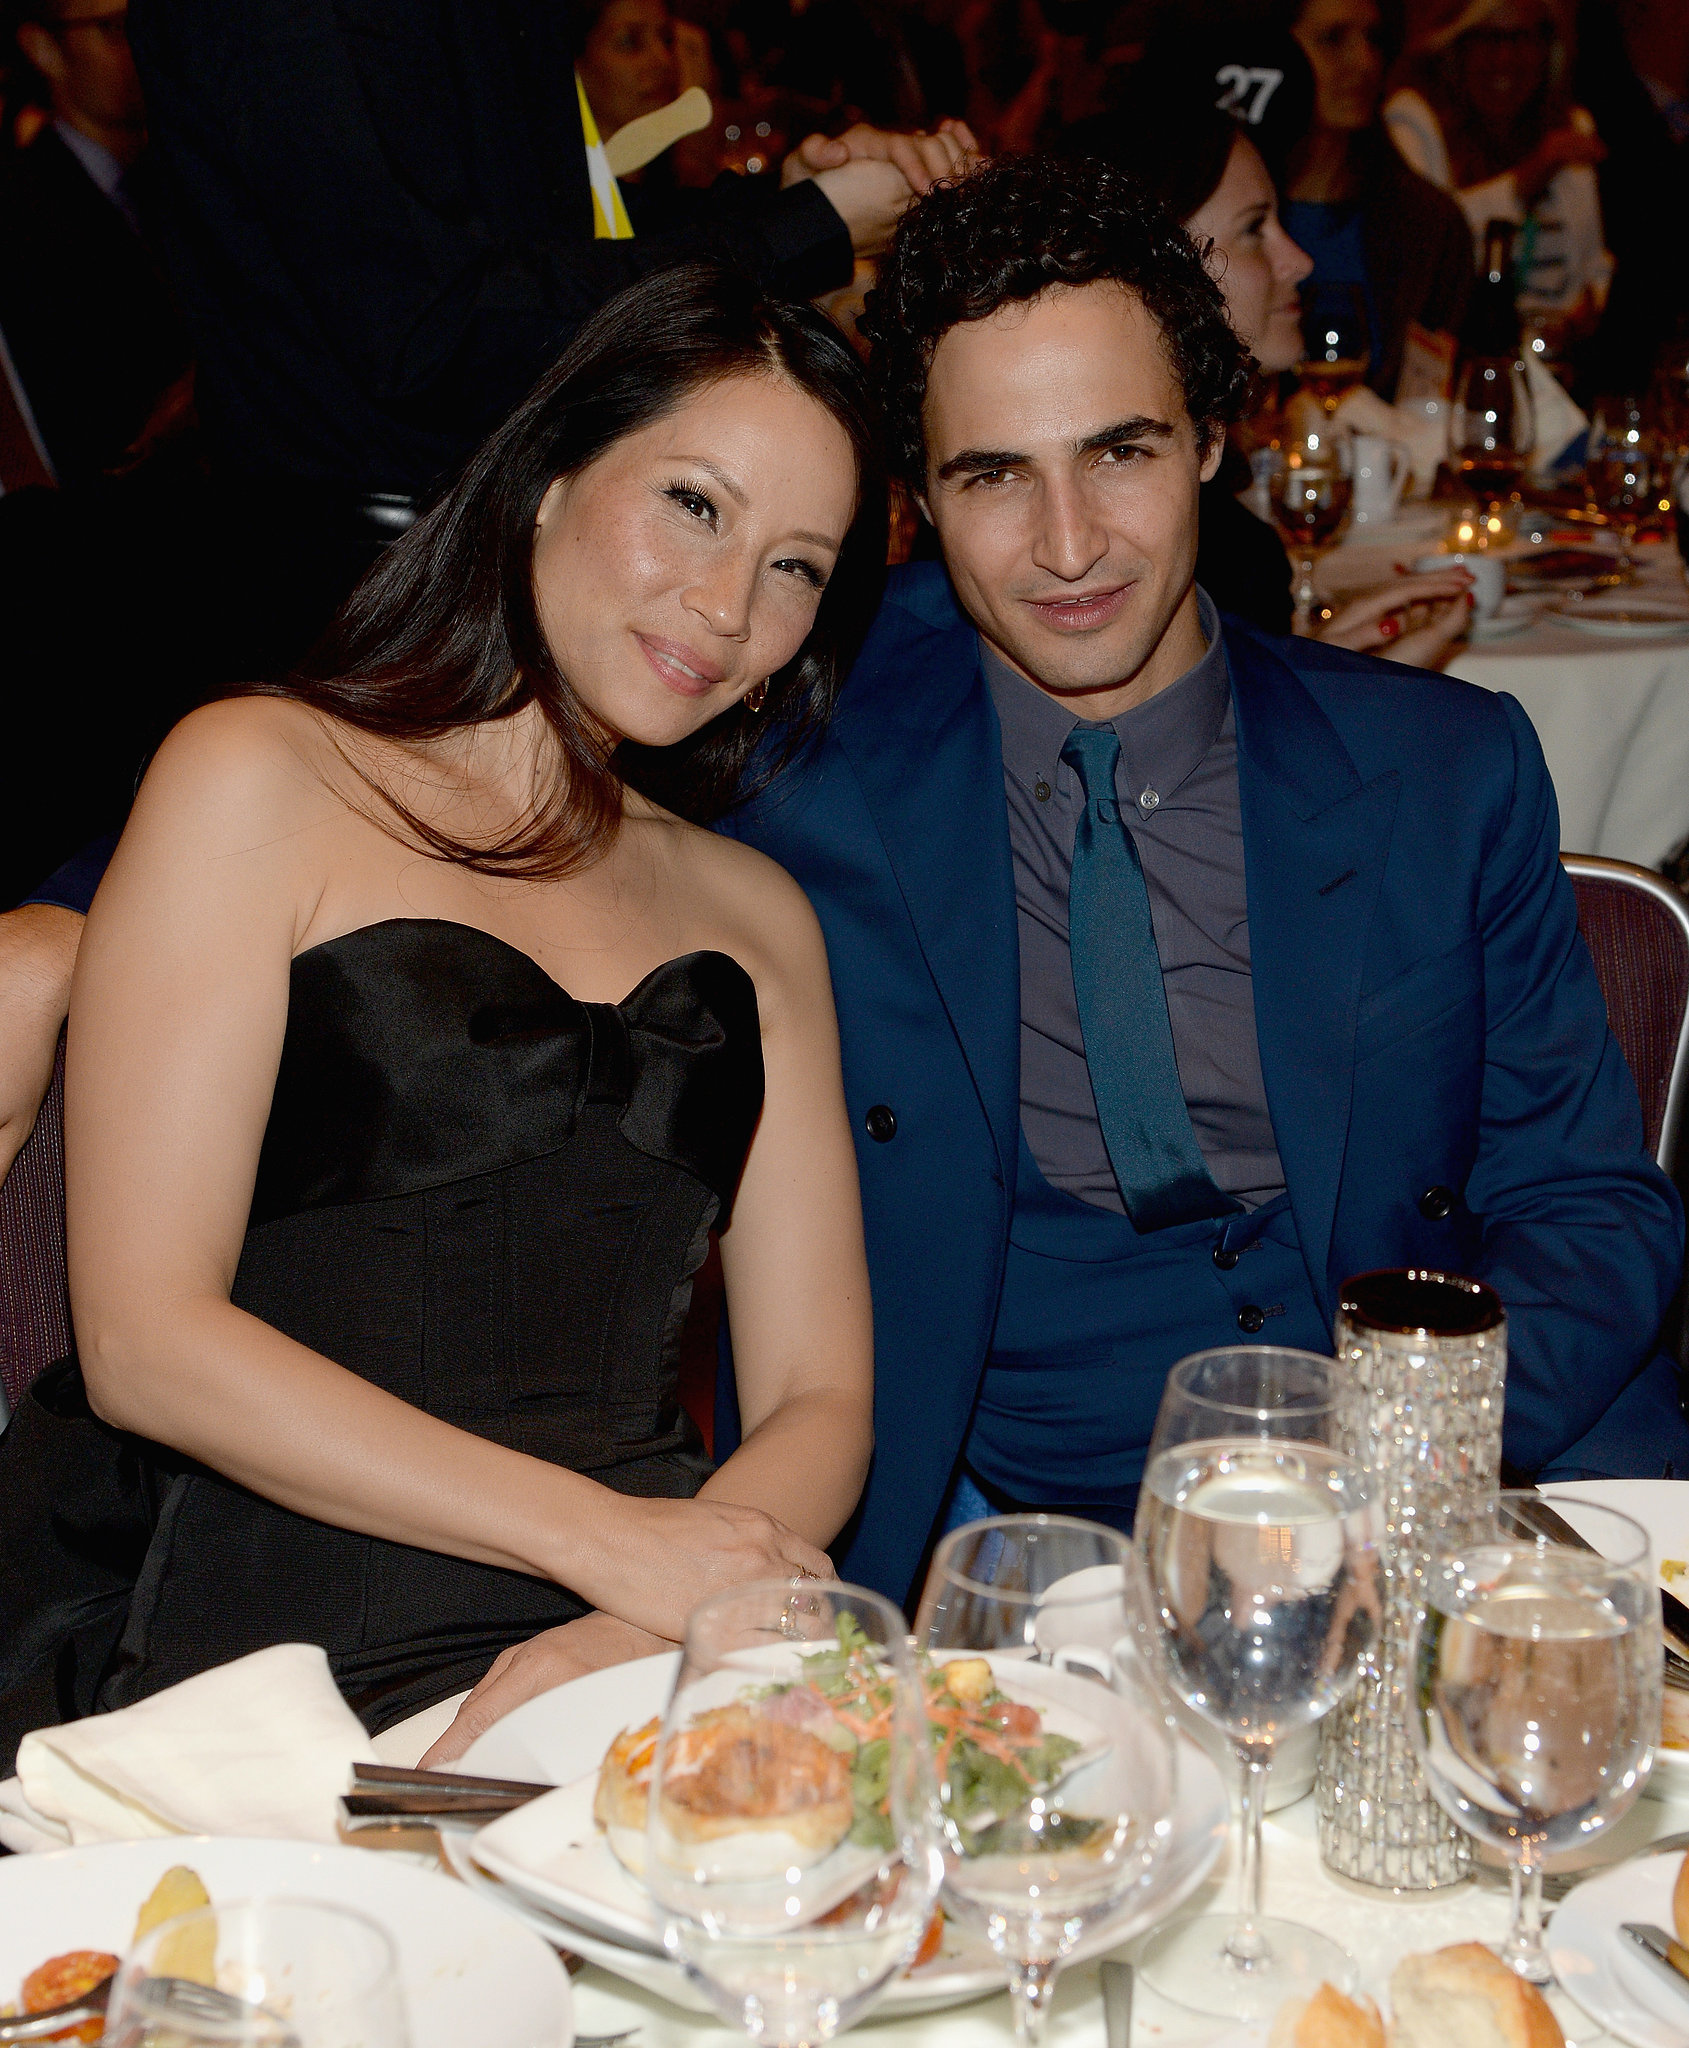 Lucy and designer Zac Posen cozied up at their table.